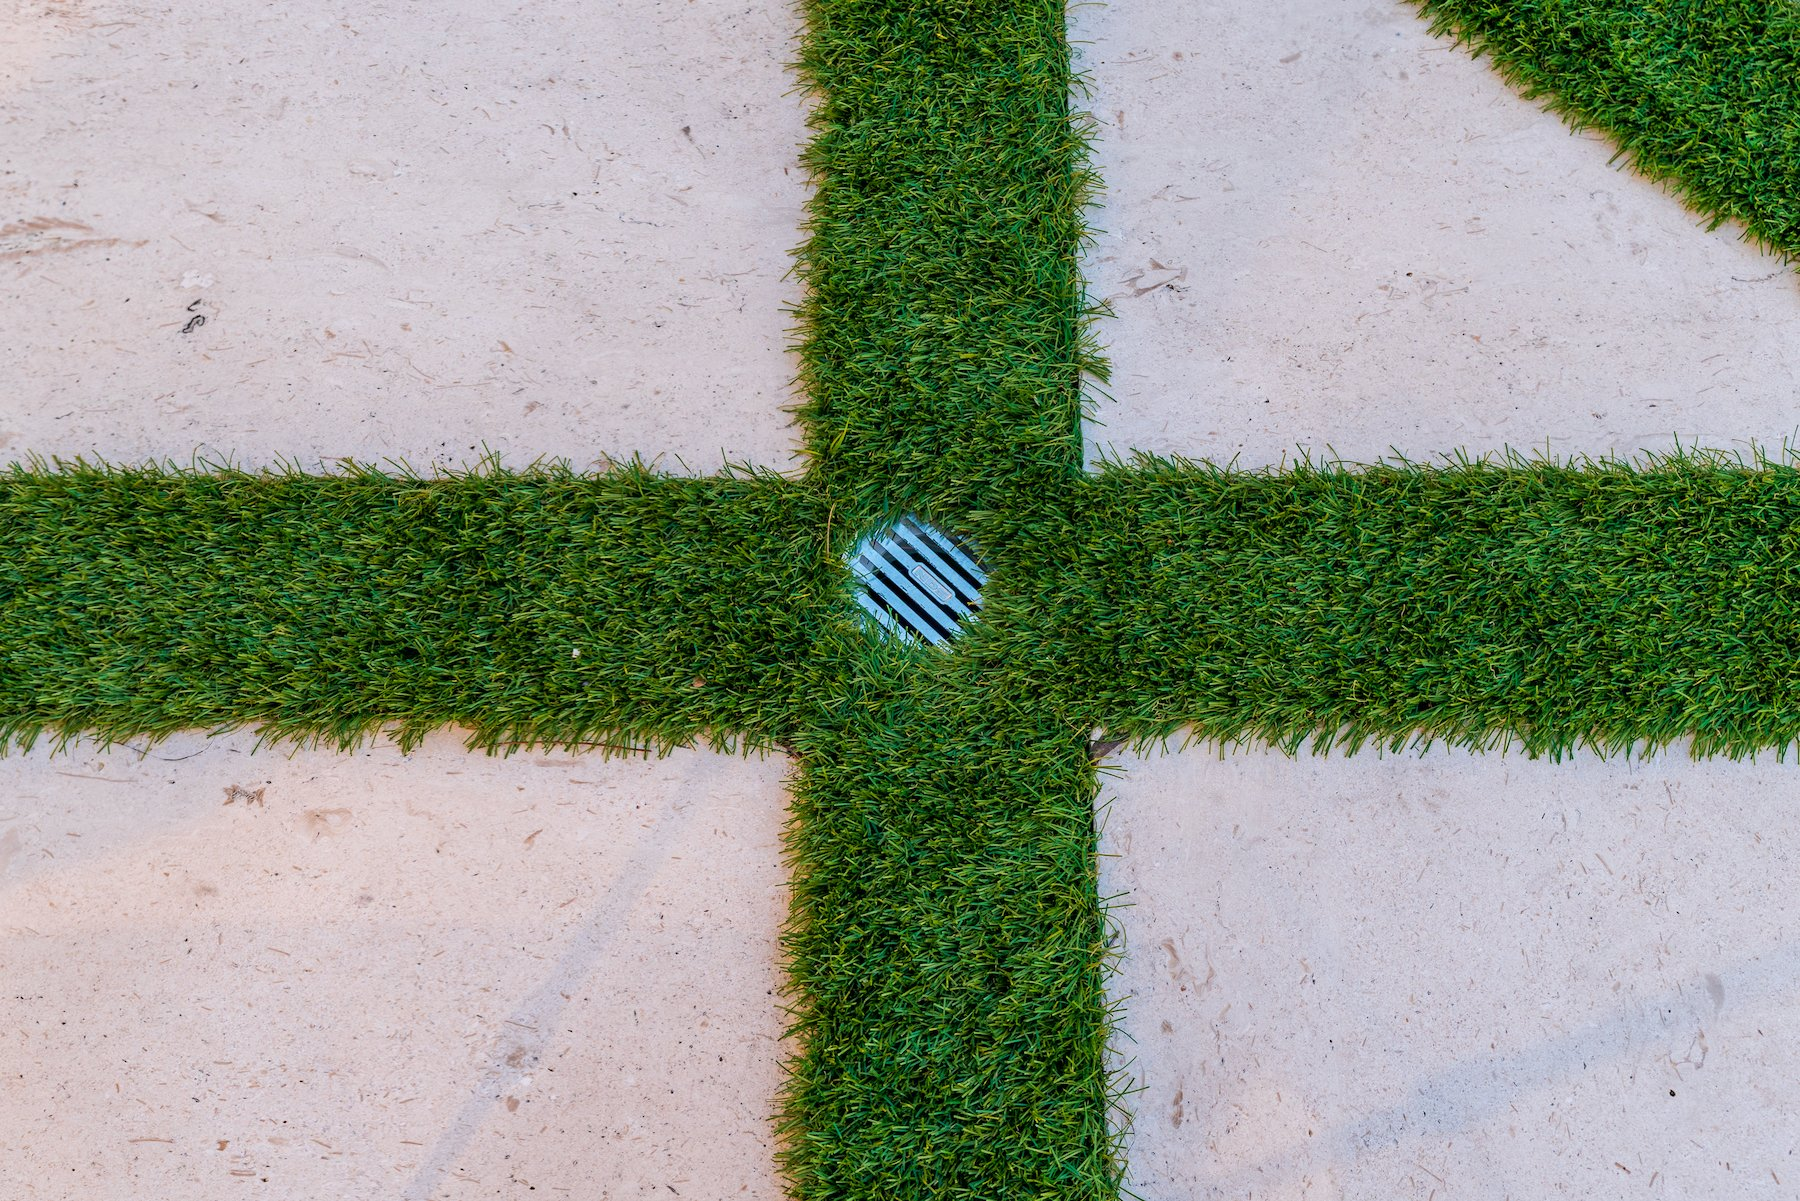 Drainage in artificial turf